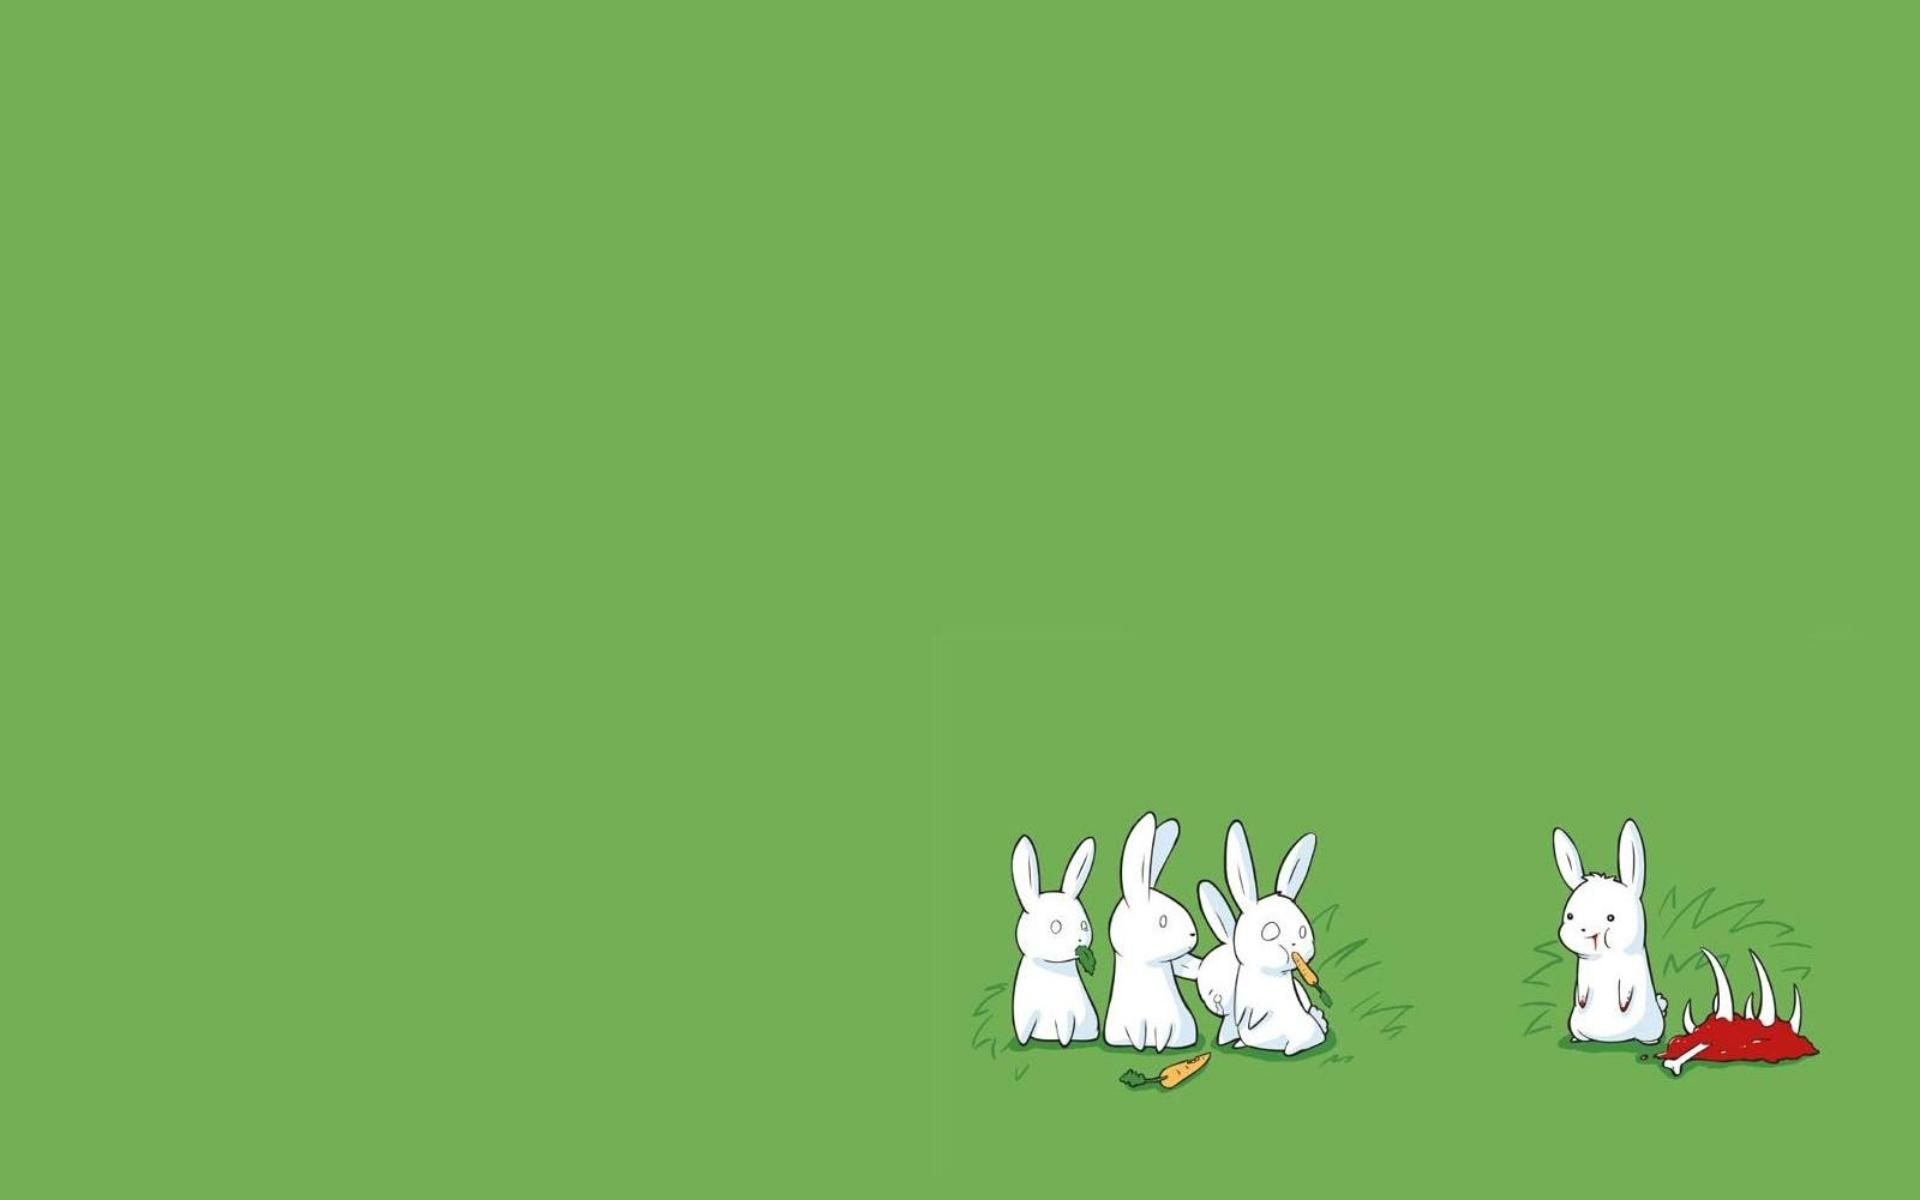 bunnies minimalistic drawings simple background simple green background related desktop